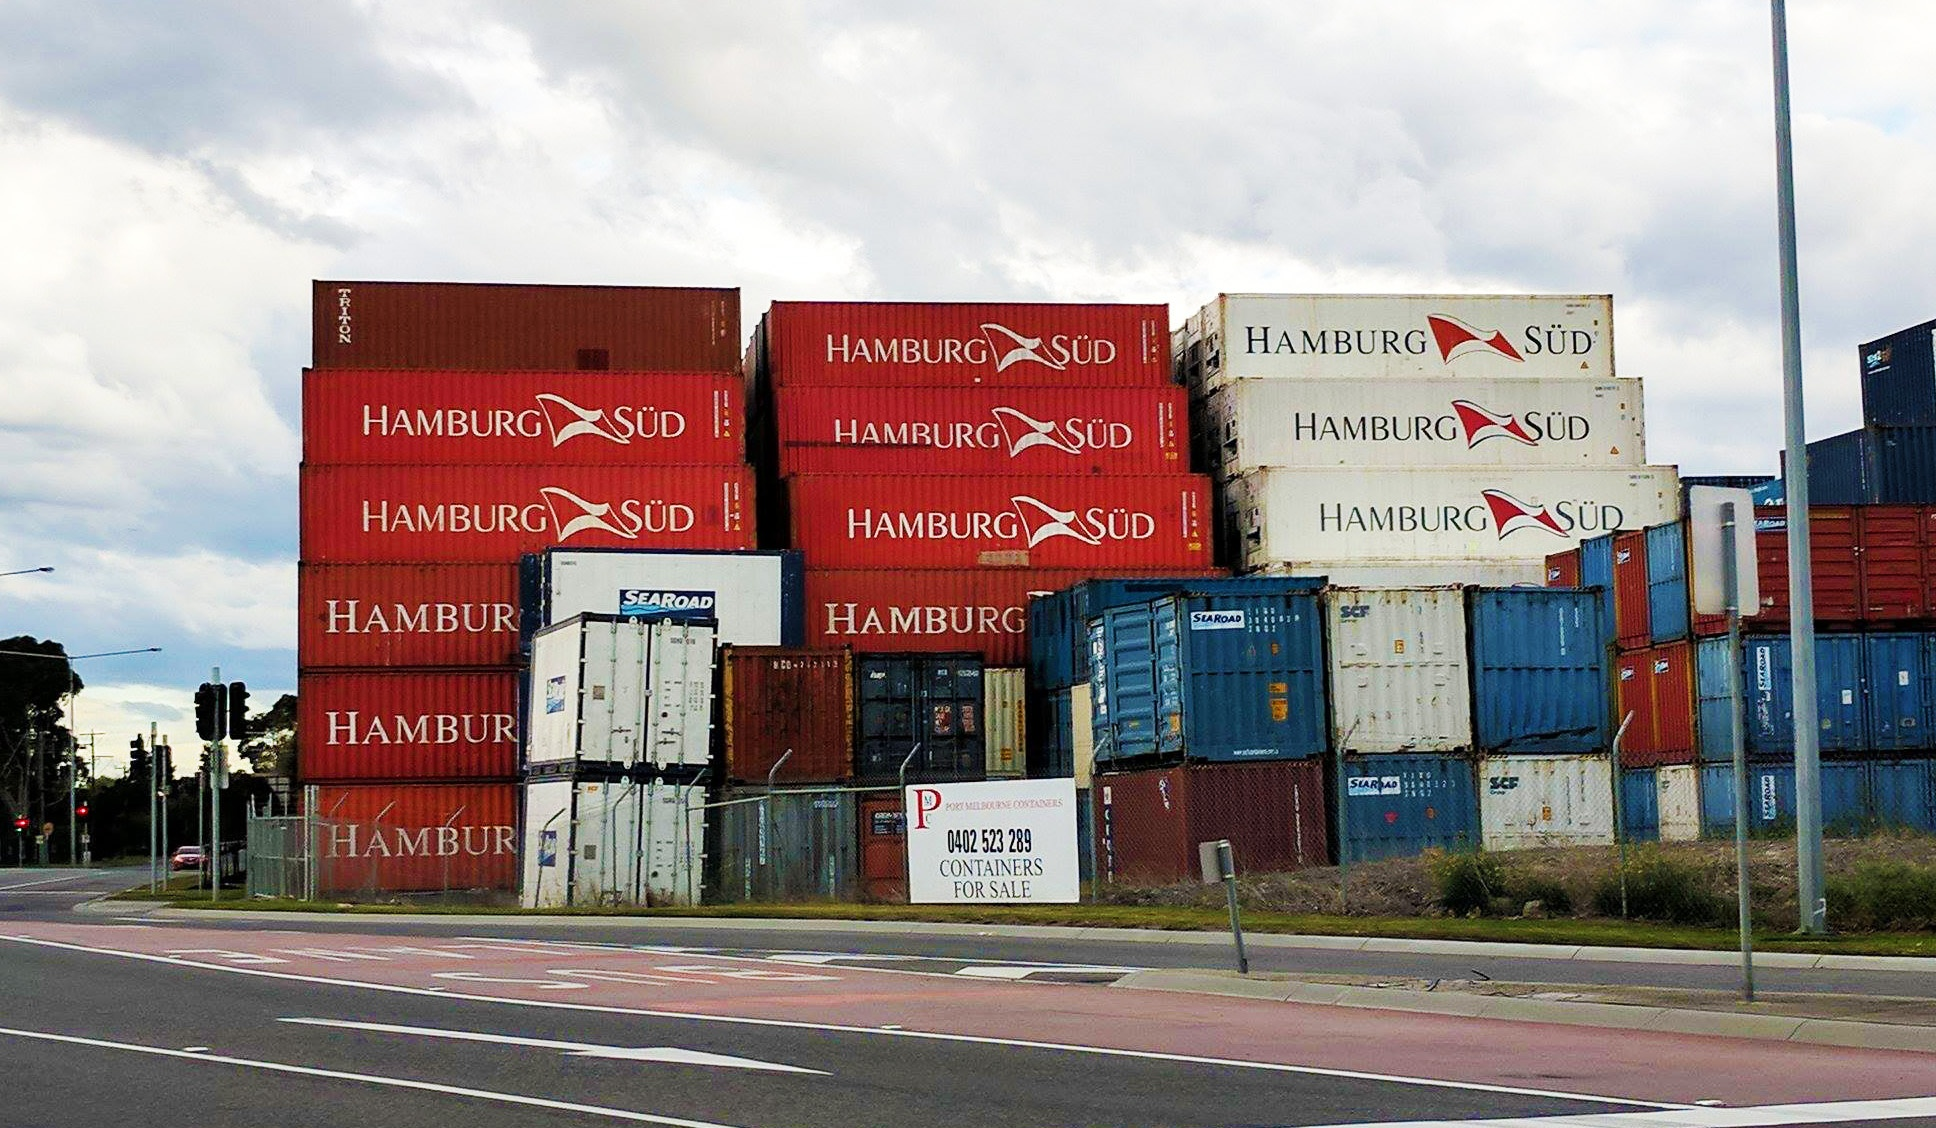 Freight Forwarding Update - Consolidation of the World's Largest Shipping Lines